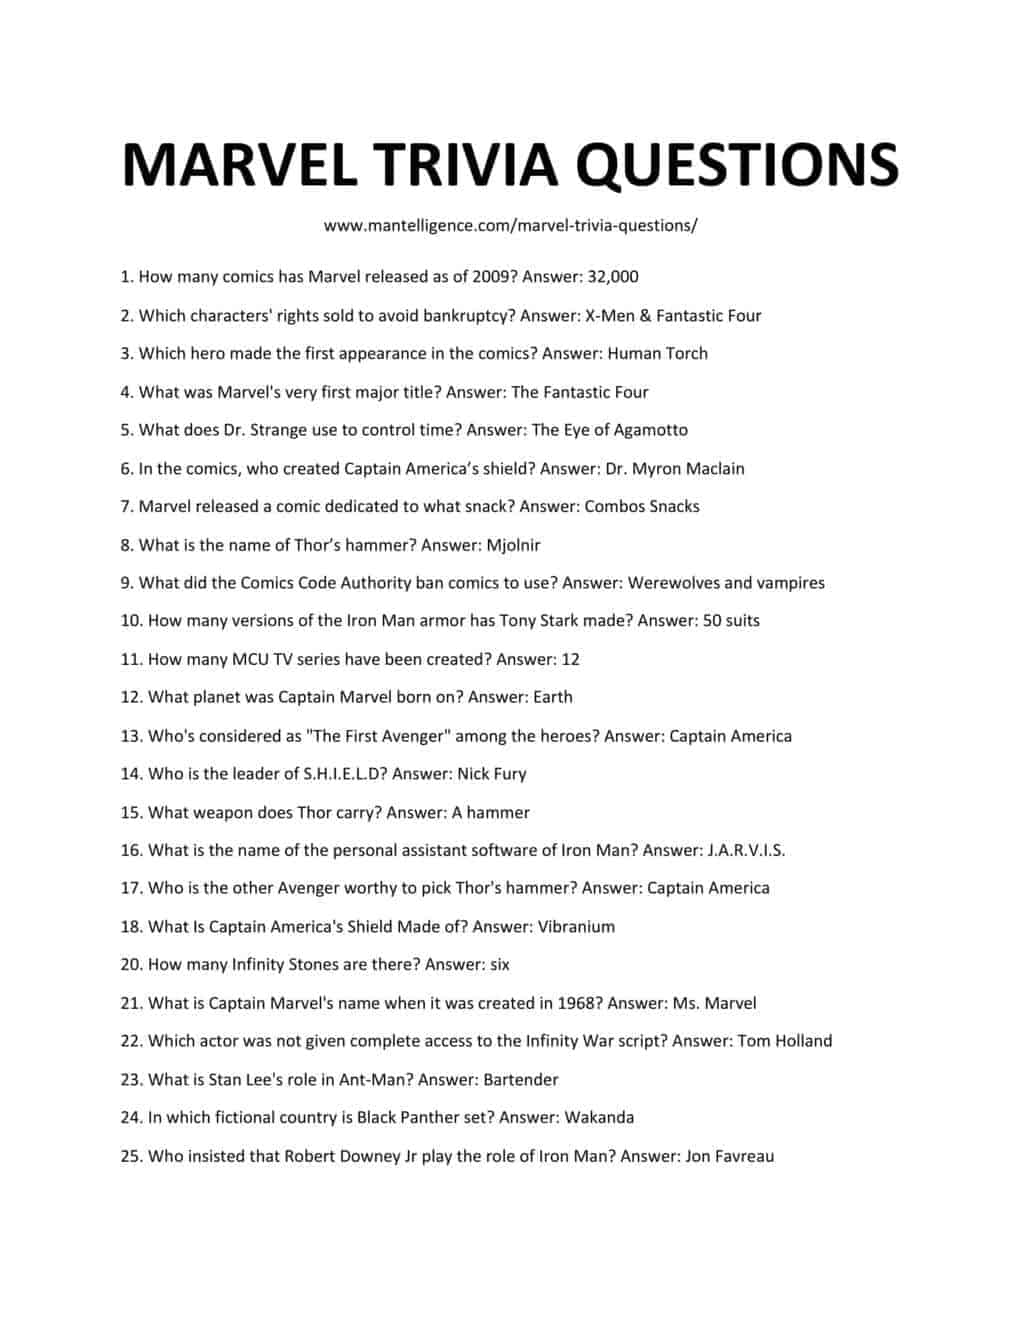 Download and printable list of marvel trivia questions as jpg or pdf